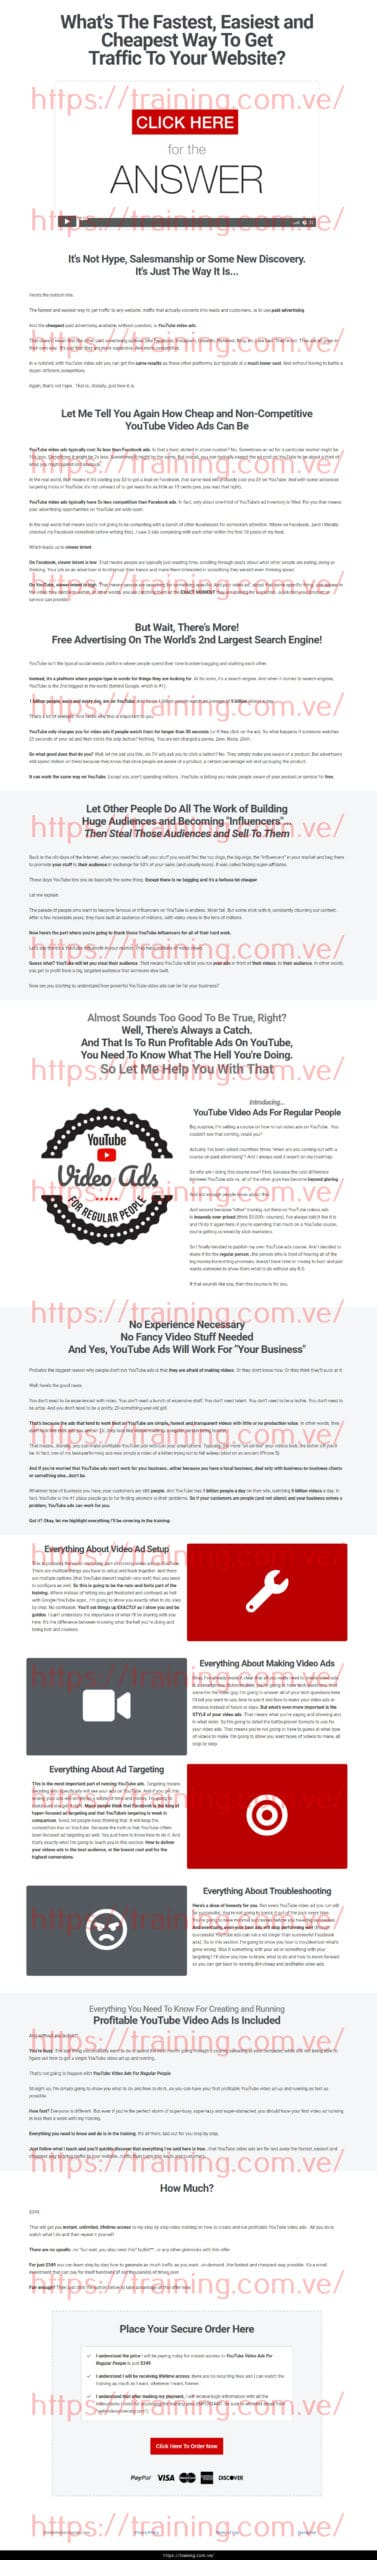 YouTube Video Ads For Regular People by Dave Kaminski Buy